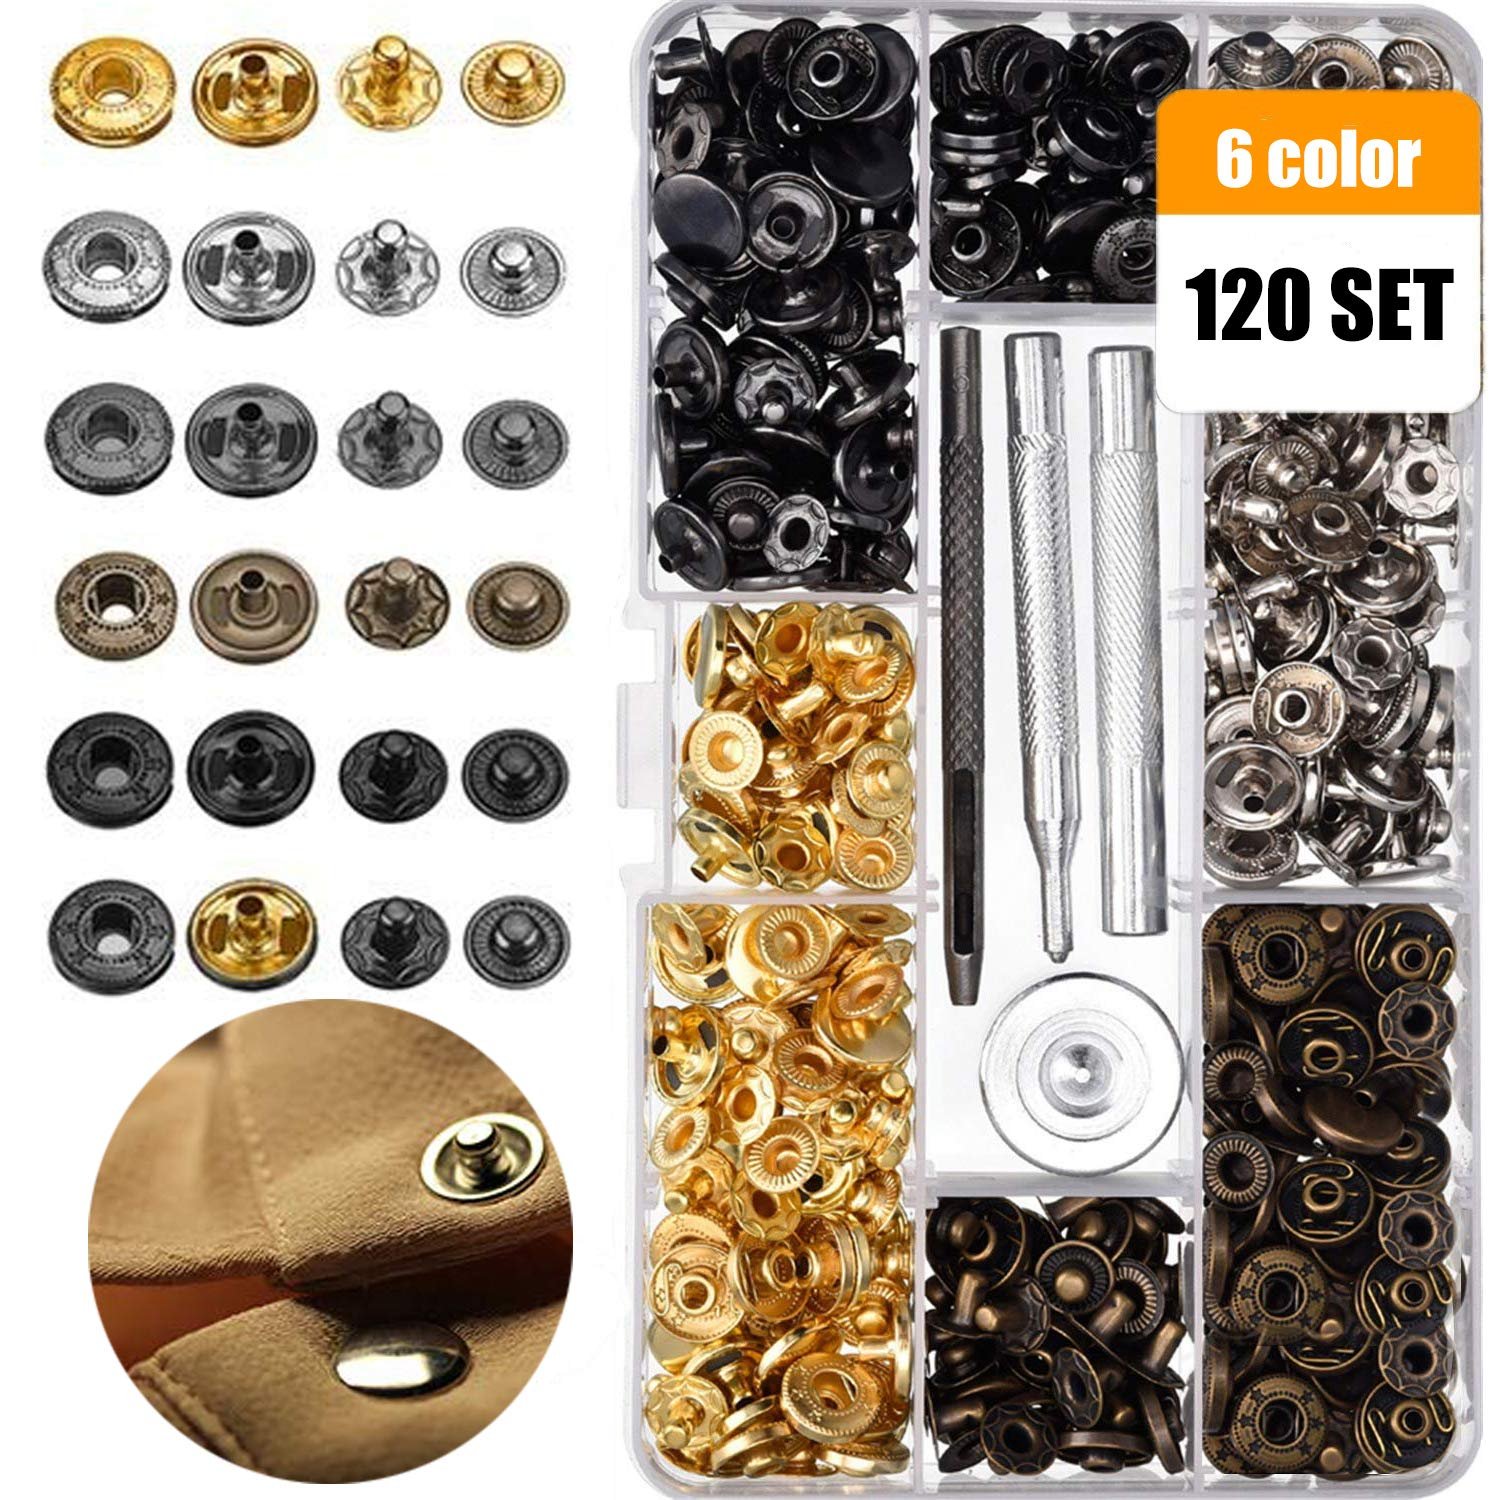 Korbond Pack of 24 24 Brass Sew On Snap Fasteners Black and Nickel Finish